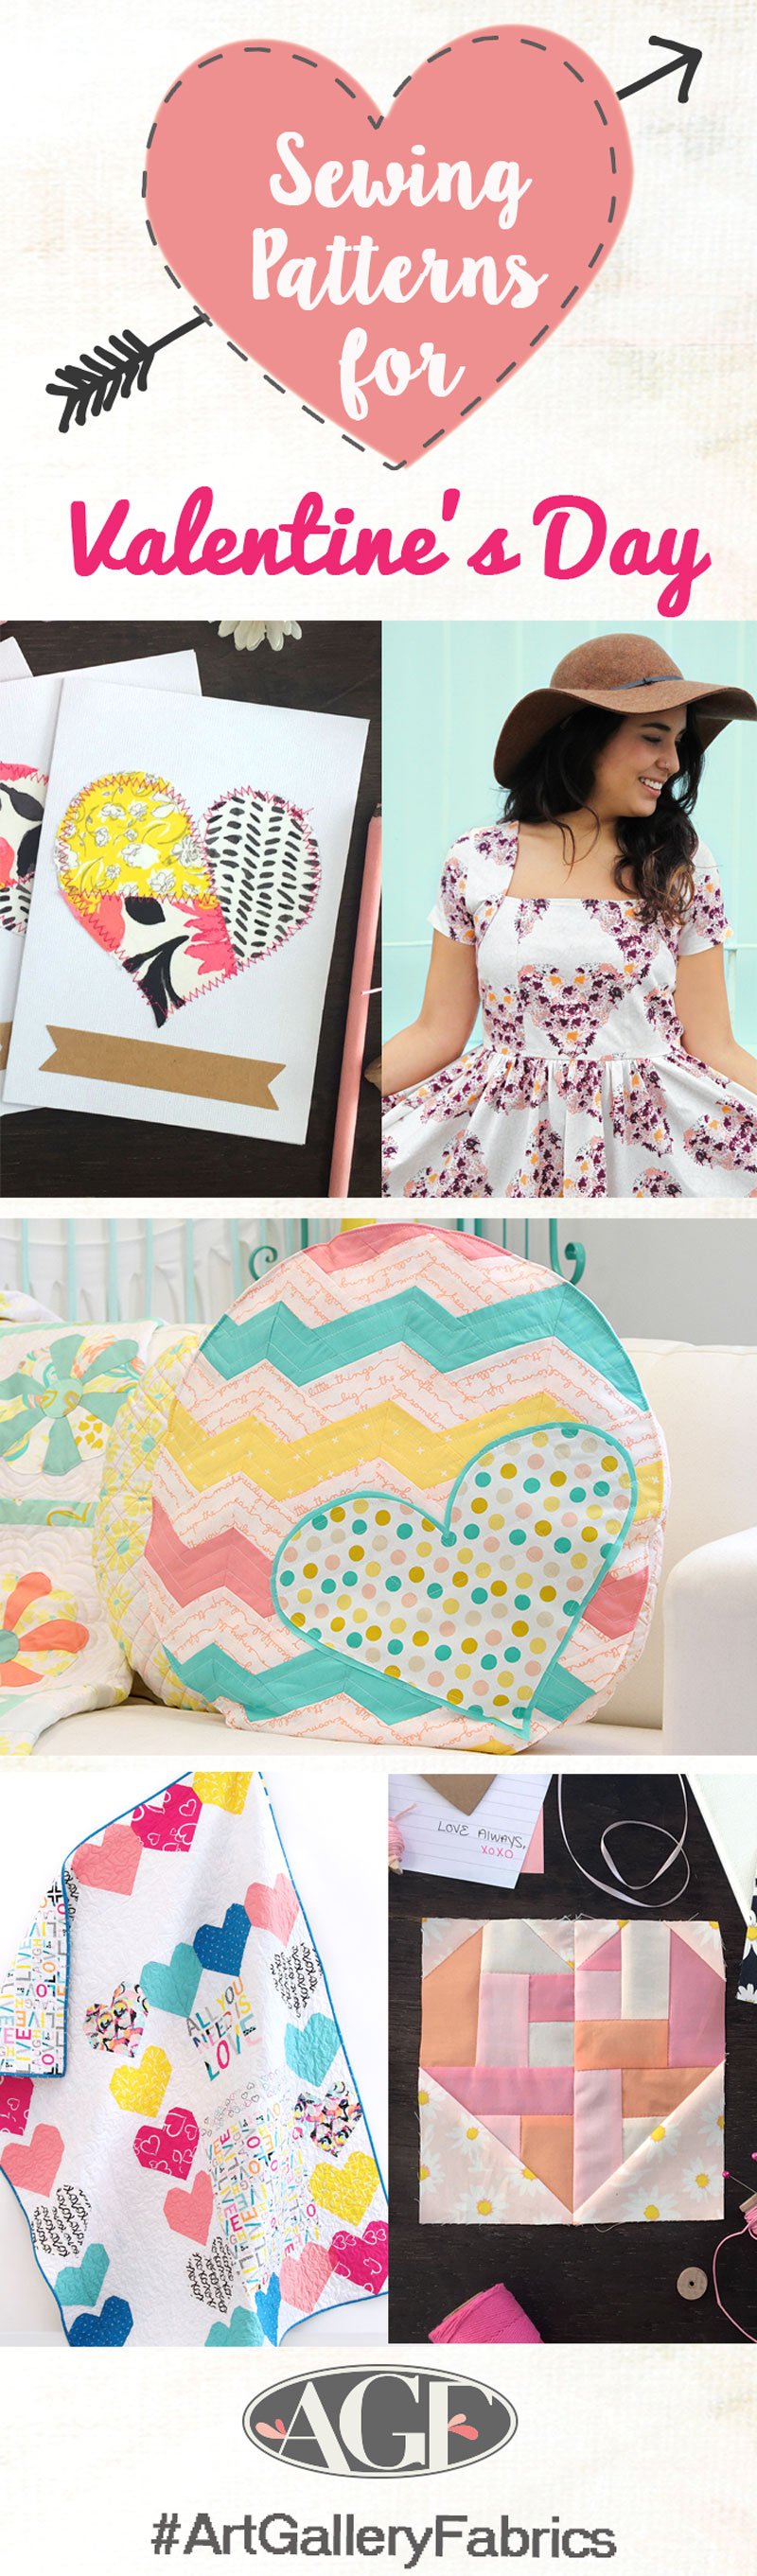 Pinterest-Holiday-Sewing-Valentine's-Day